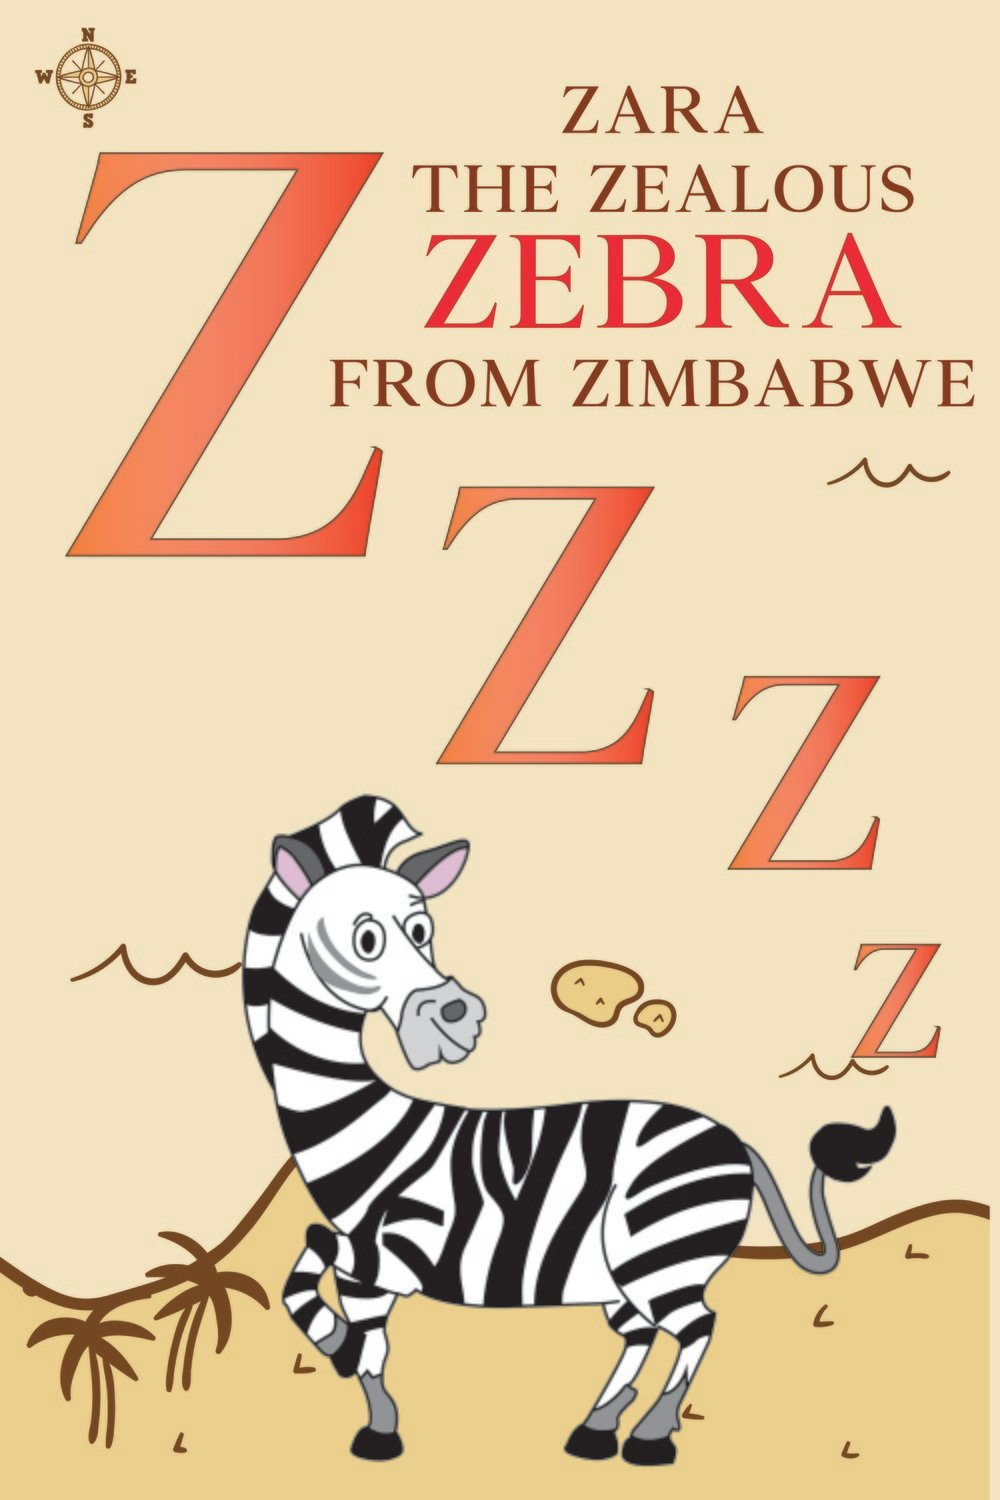 Zara The Zealous ZEBRA From ZIMBABWE Poster